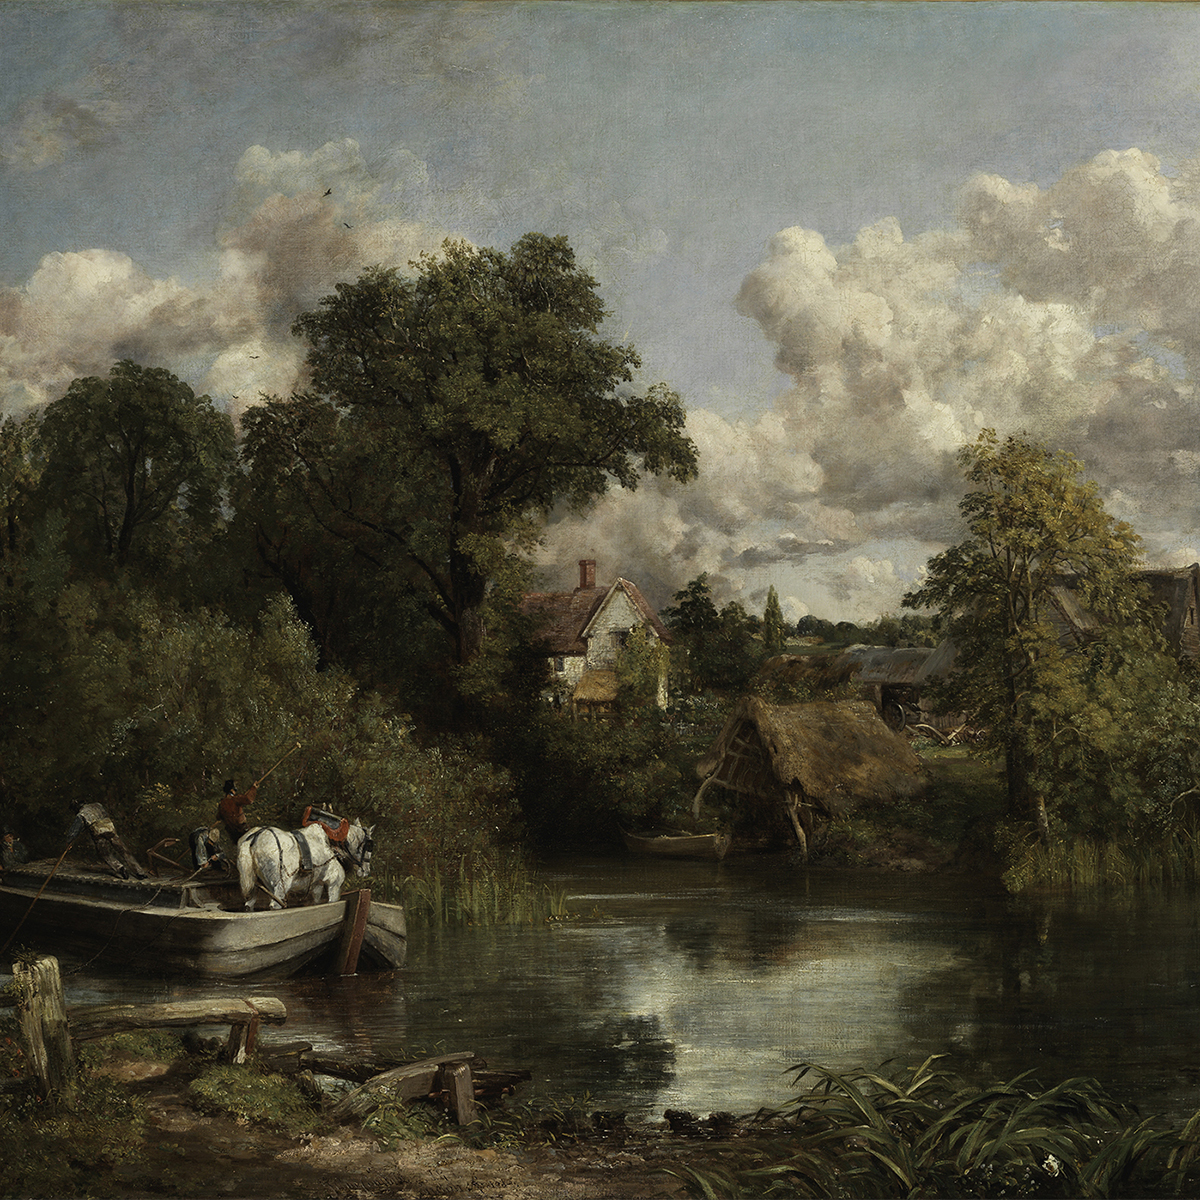 Oil painting of lush green landscape with boat on a river ferrying a white horse